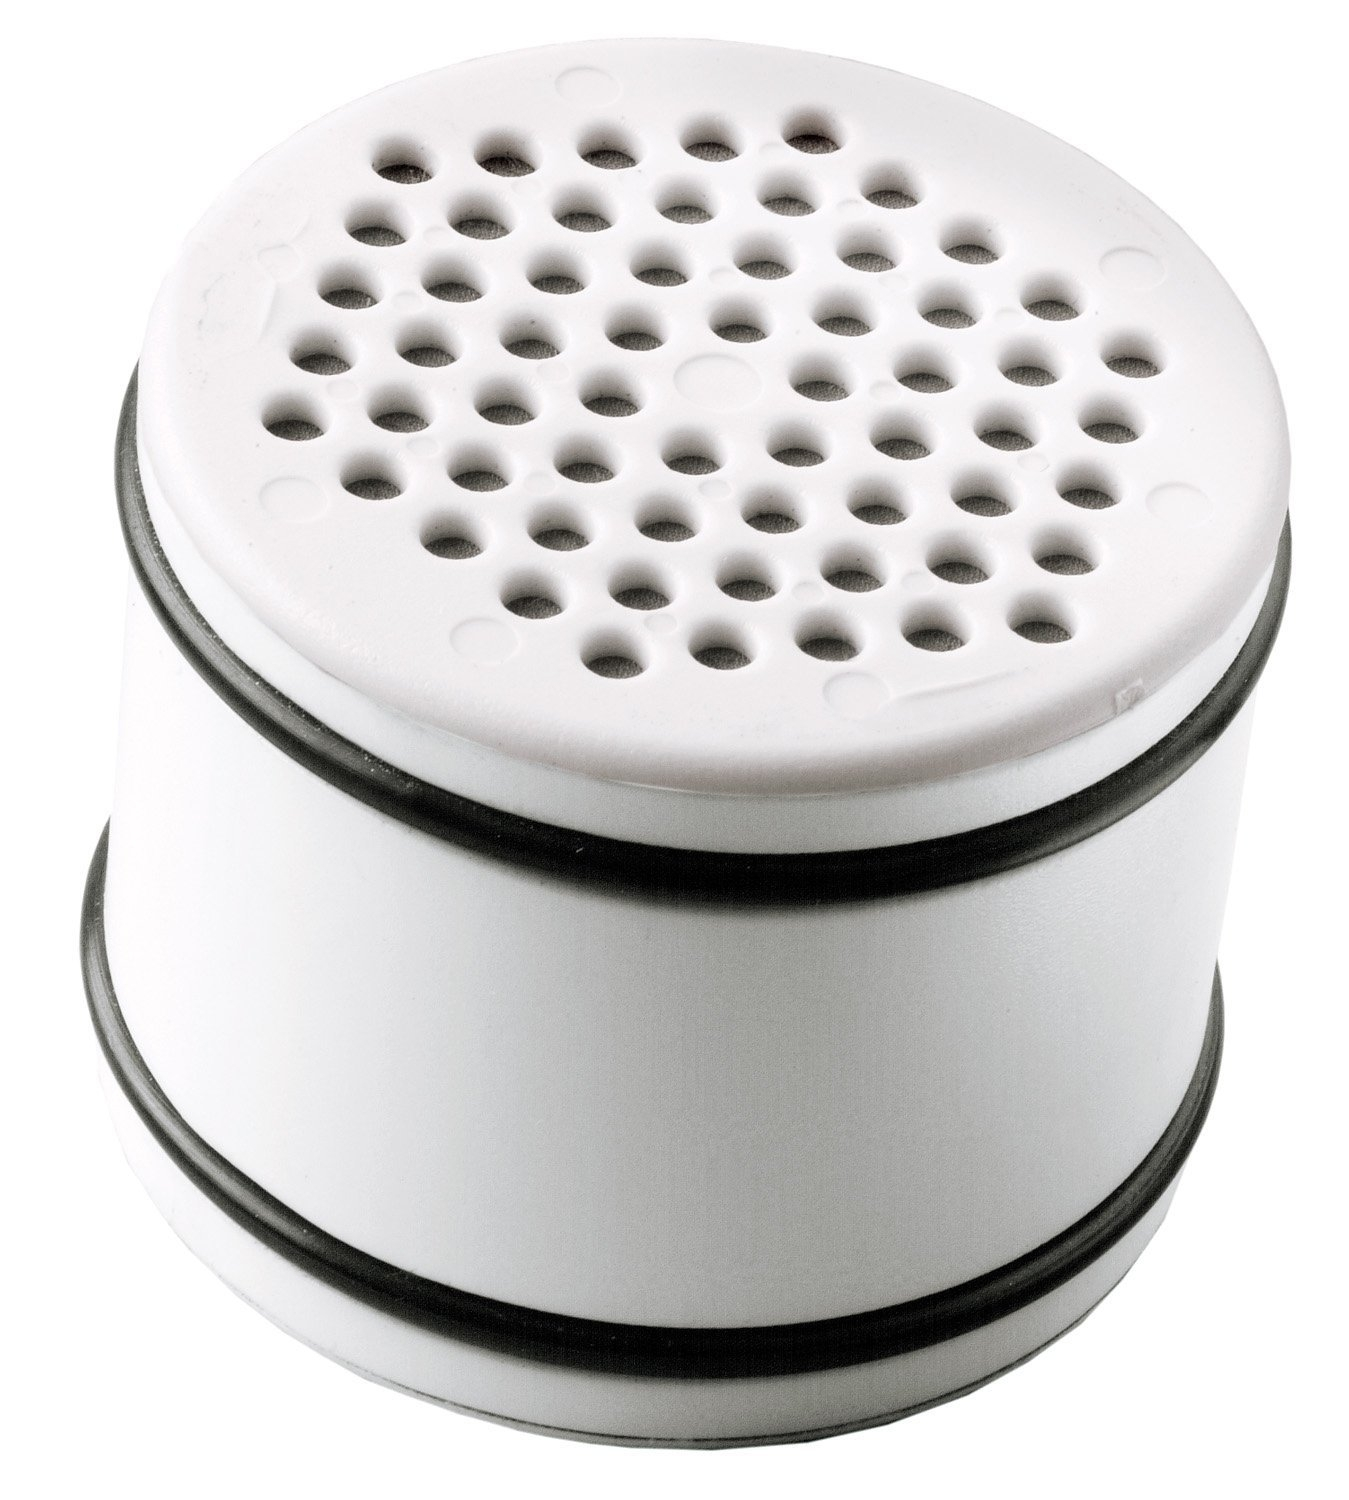 replacement filter for culligan filtered shower heads best offer replacement filter for. Black Bedroom Furniture Sets. Home Design Ideas